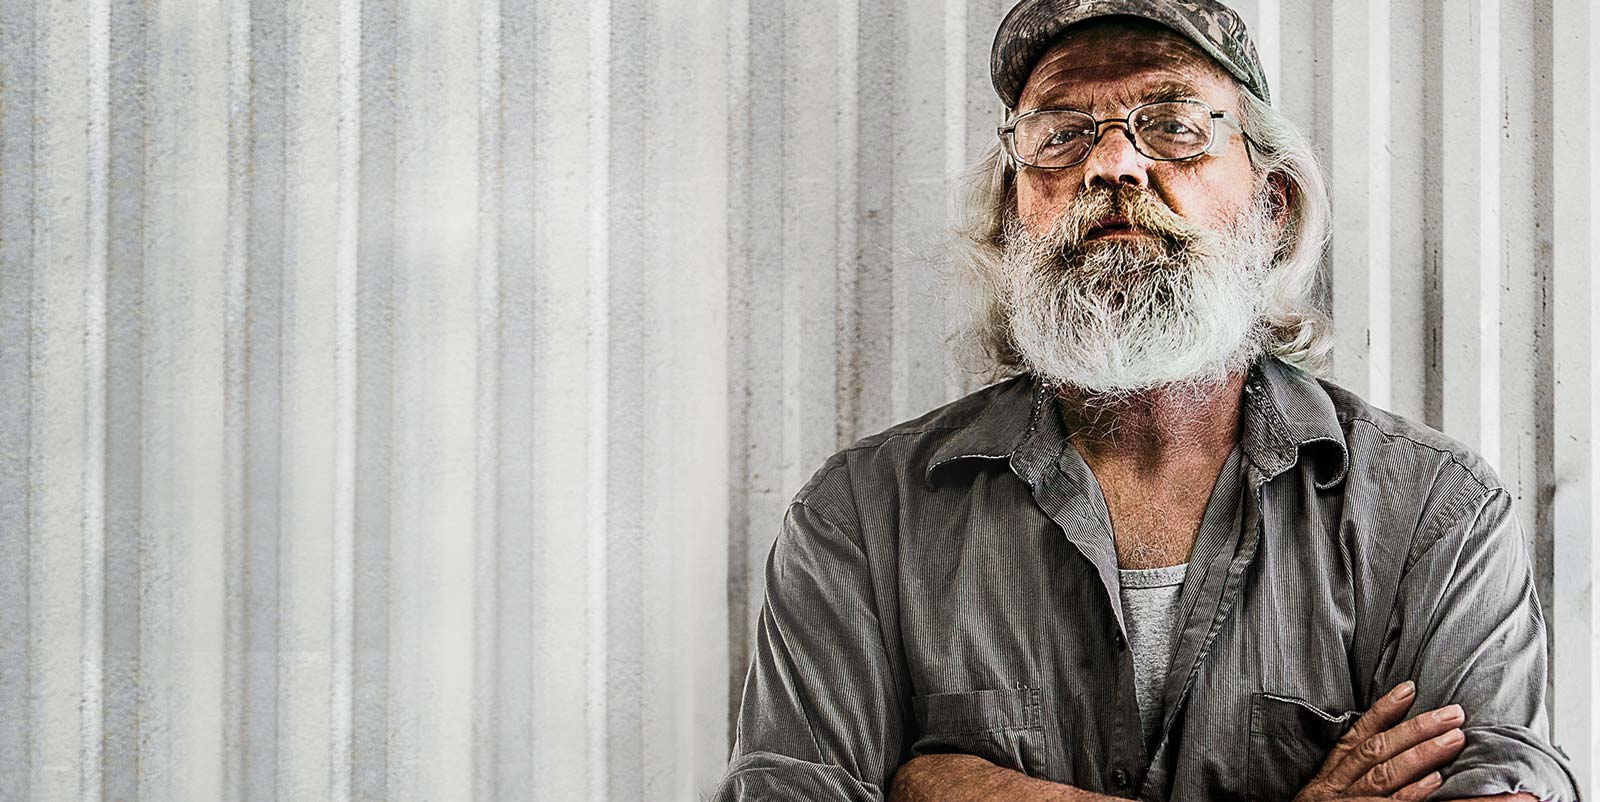 American, white-bearded, weathered man who works hard at the Ferche mill